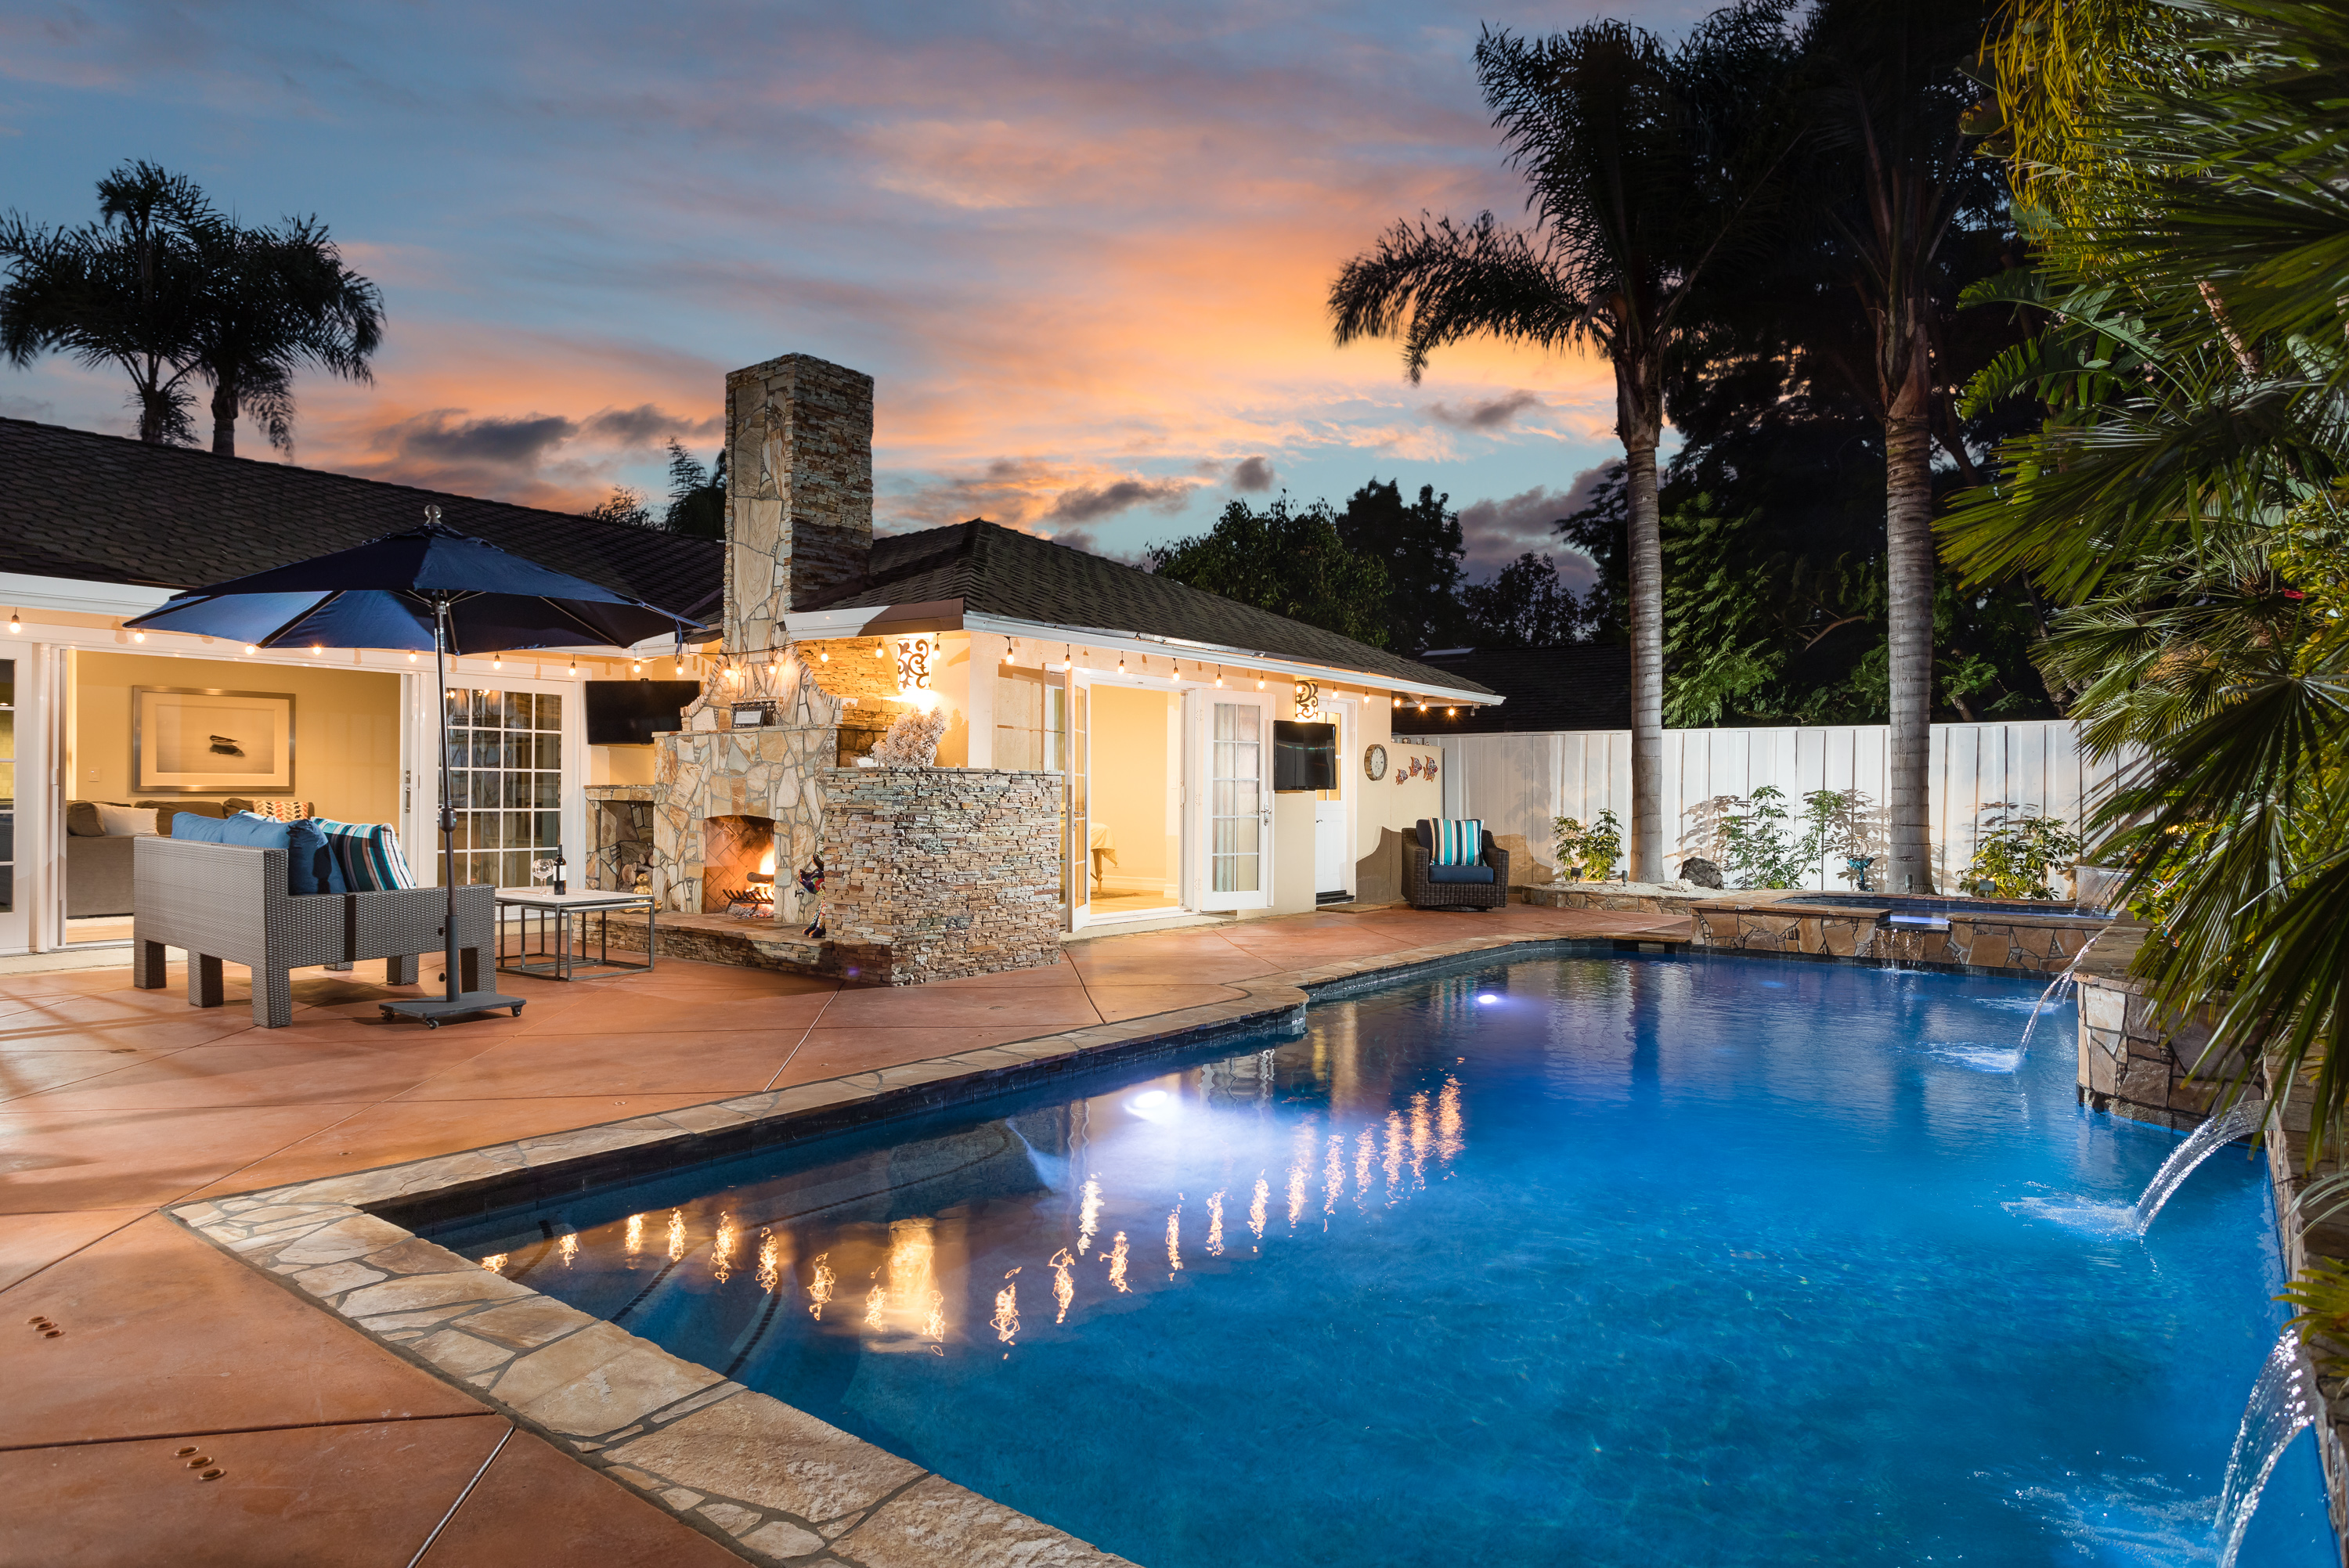 Featured Property Newport Beach: High-end Features Embellish Dover Shores  Remodel